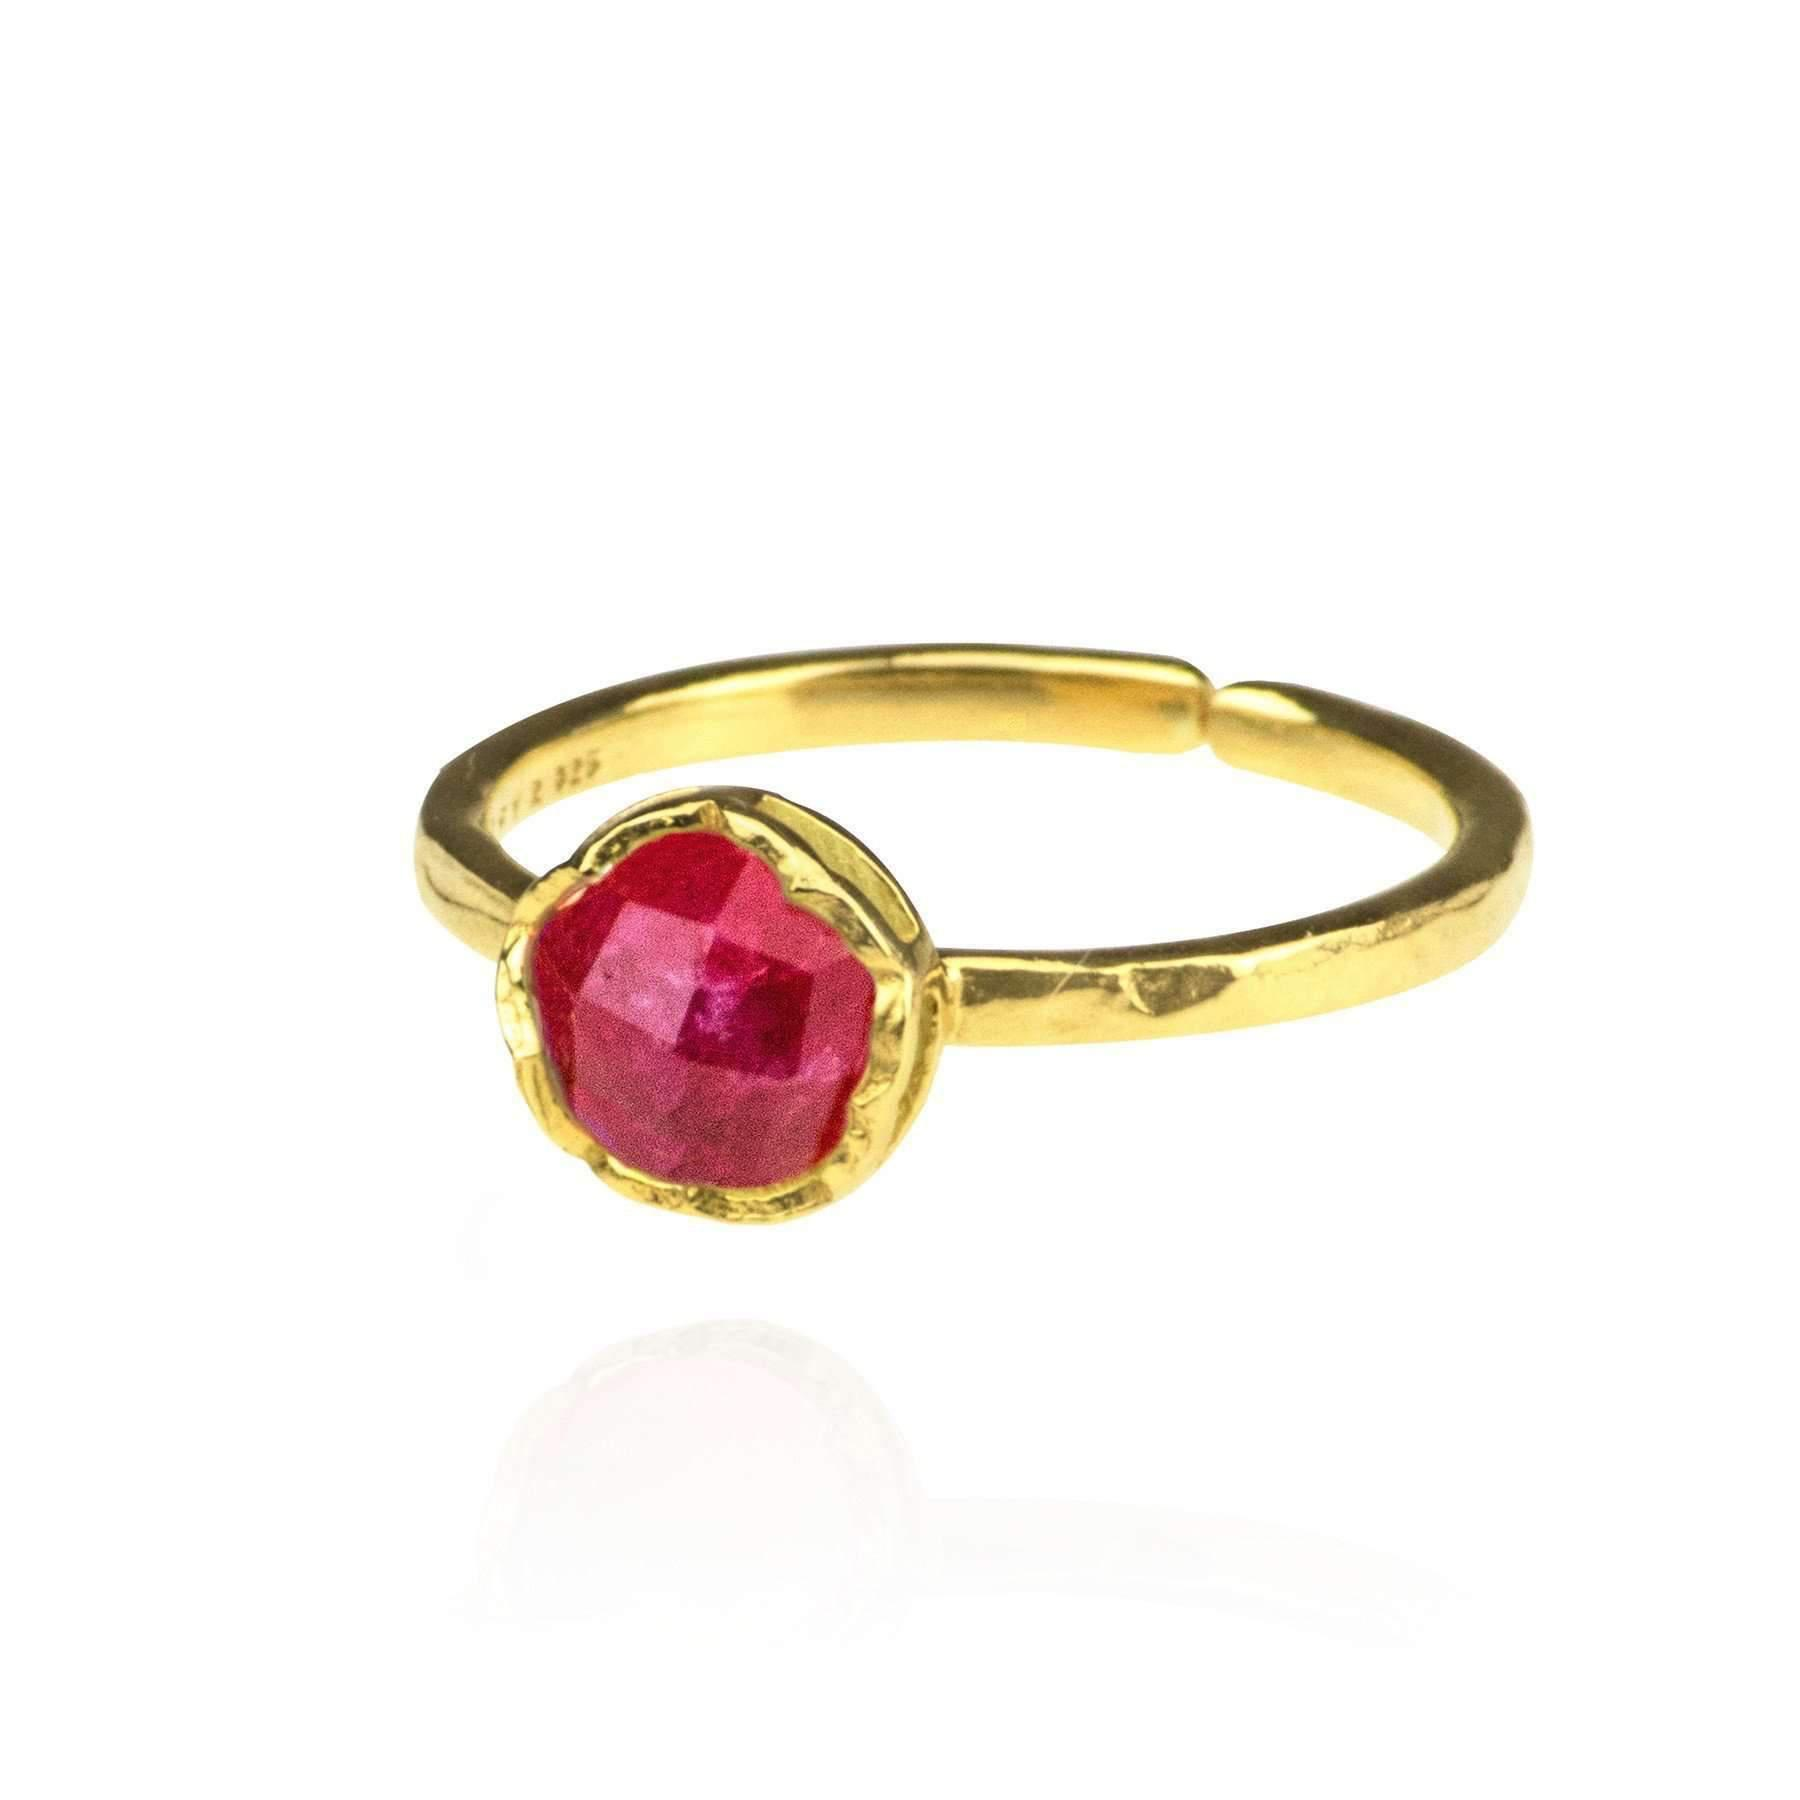 Zefyr Dosha Ring Gold - UK T 1/2 - US 10 - EU 62 1/4 bYgY8